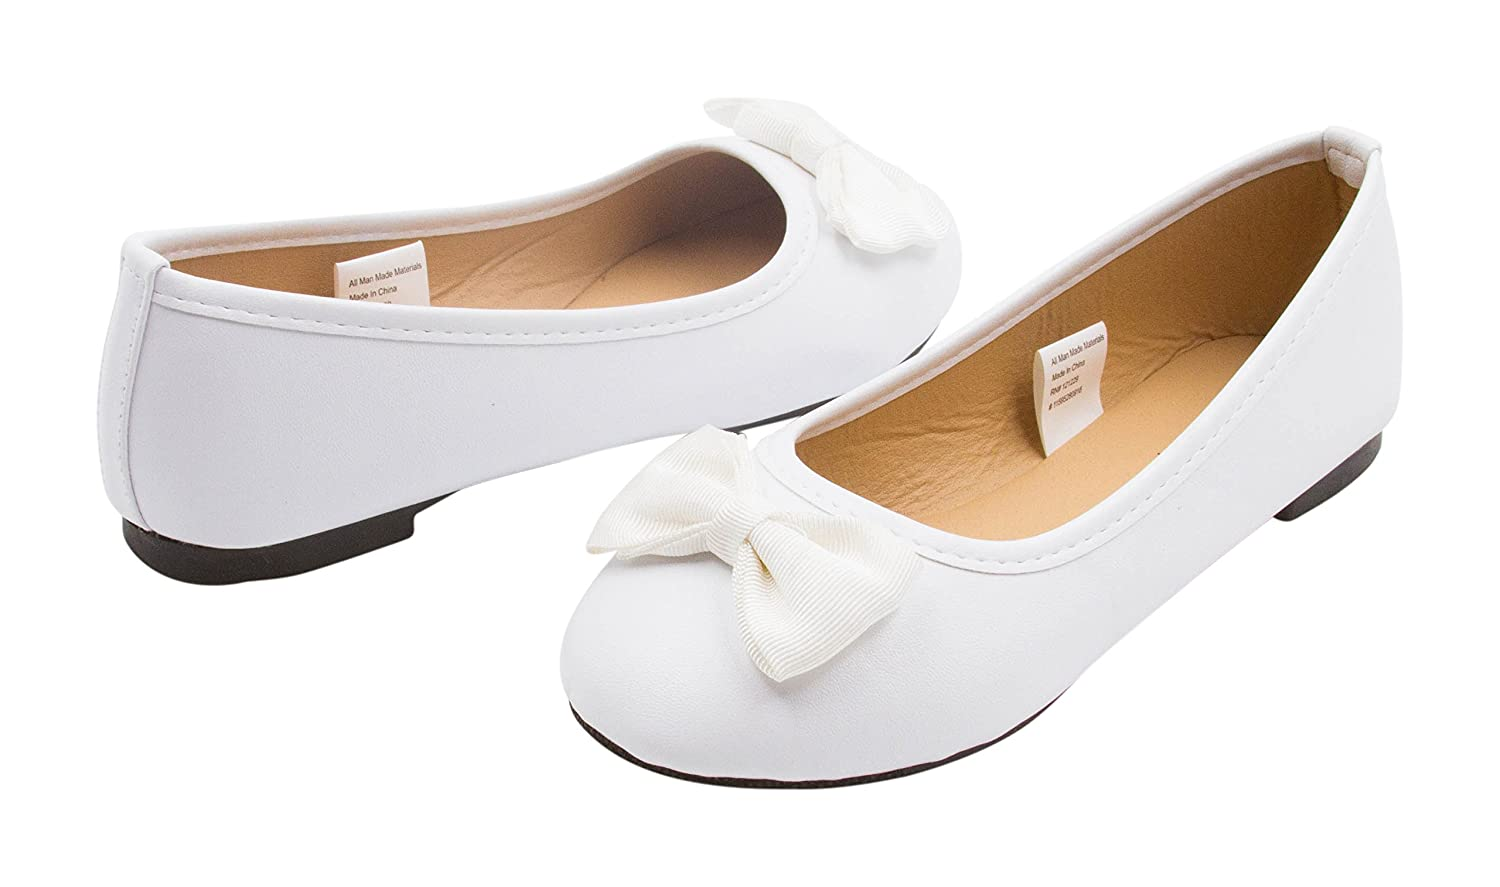 Girls Ballet Flats Round Toe Embellished with Grosgrain Bows Slip-On Shoes Flexible PU Leather White Sara Z